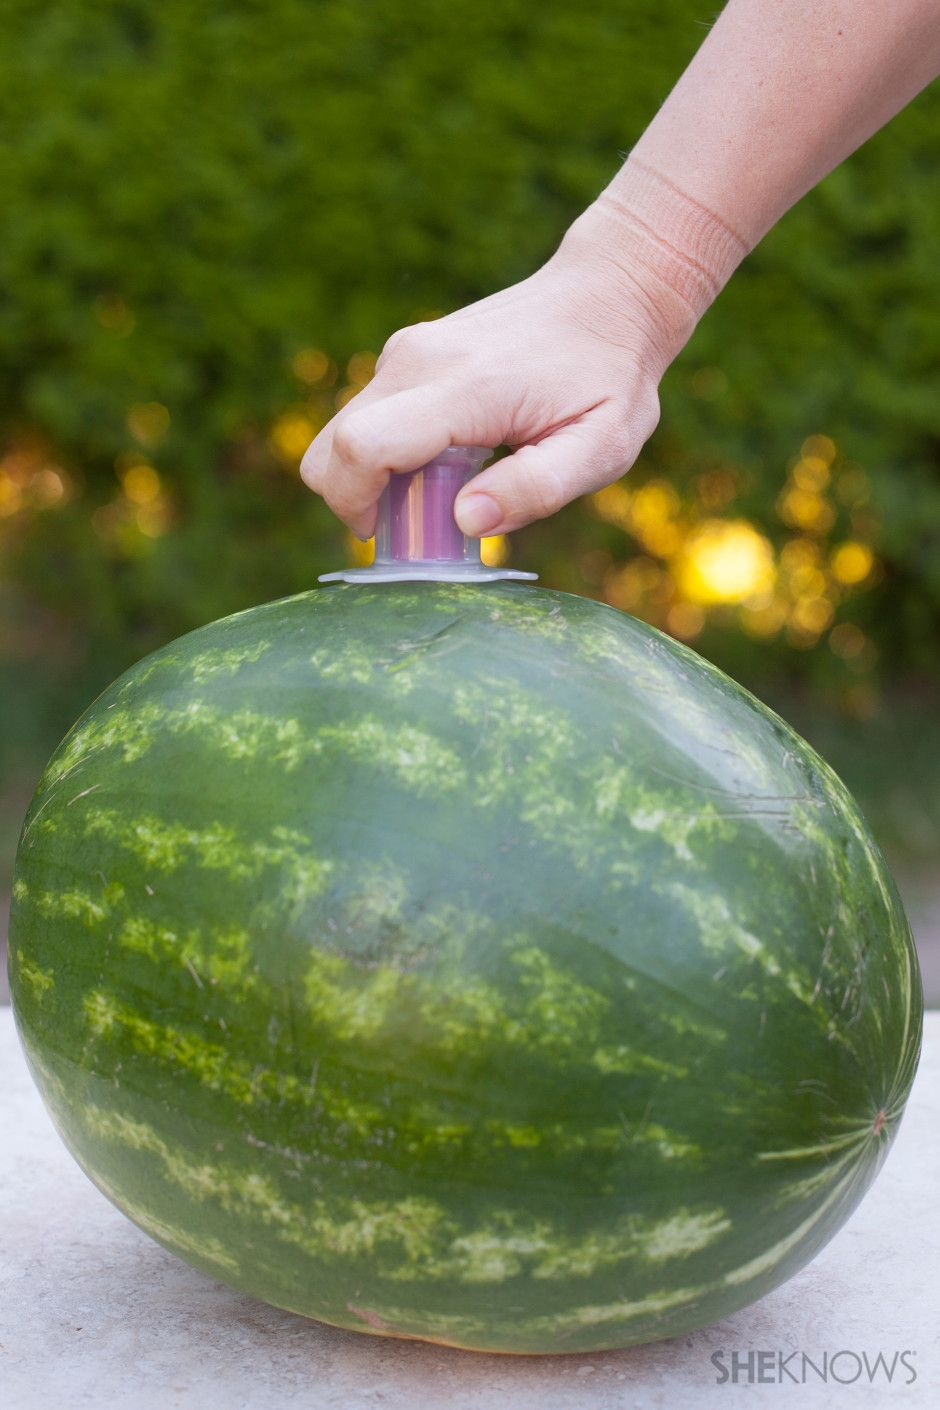 how to infuse watermelon with alcohol